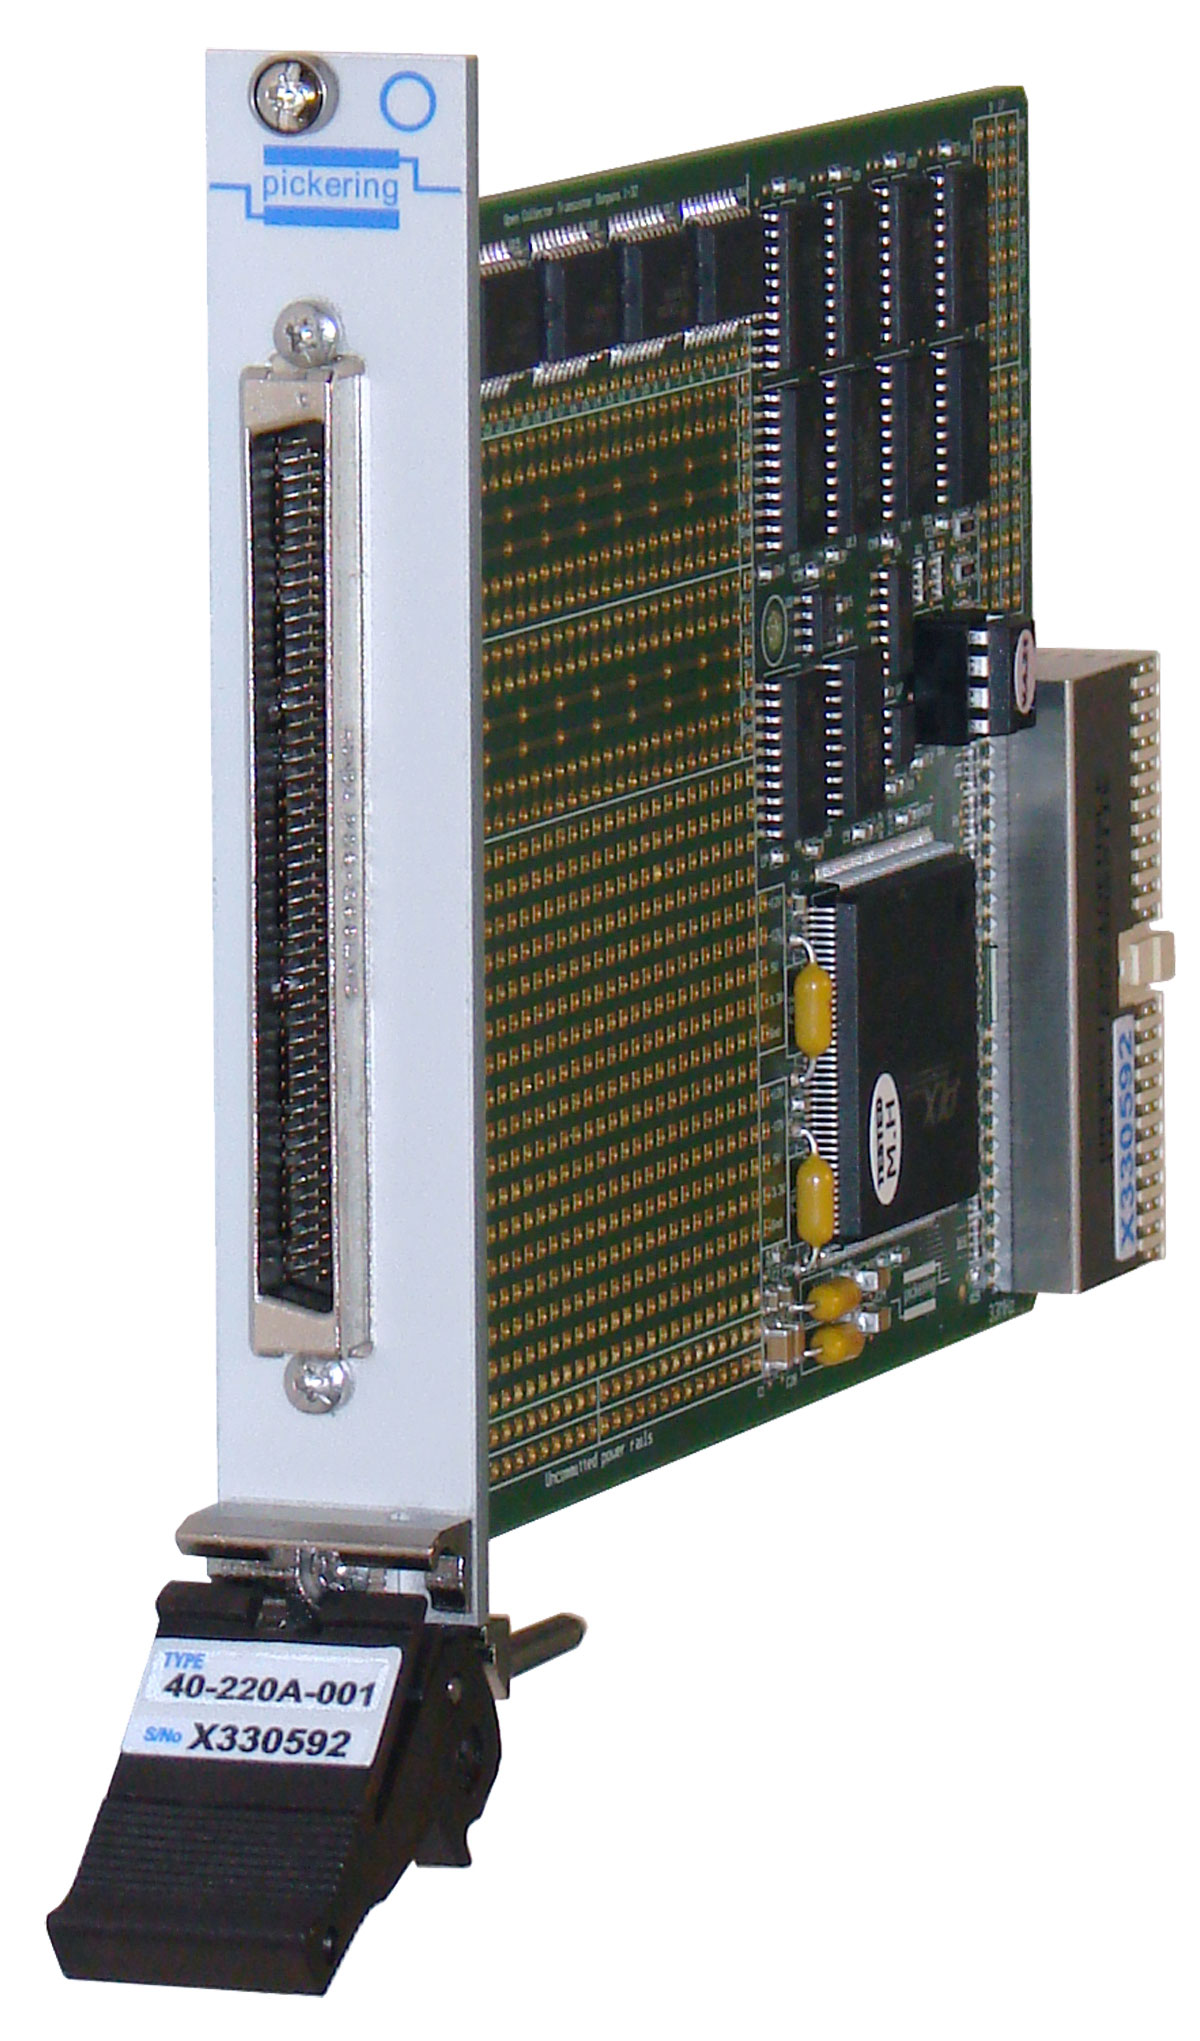 PXI breadboard module with digital I/O